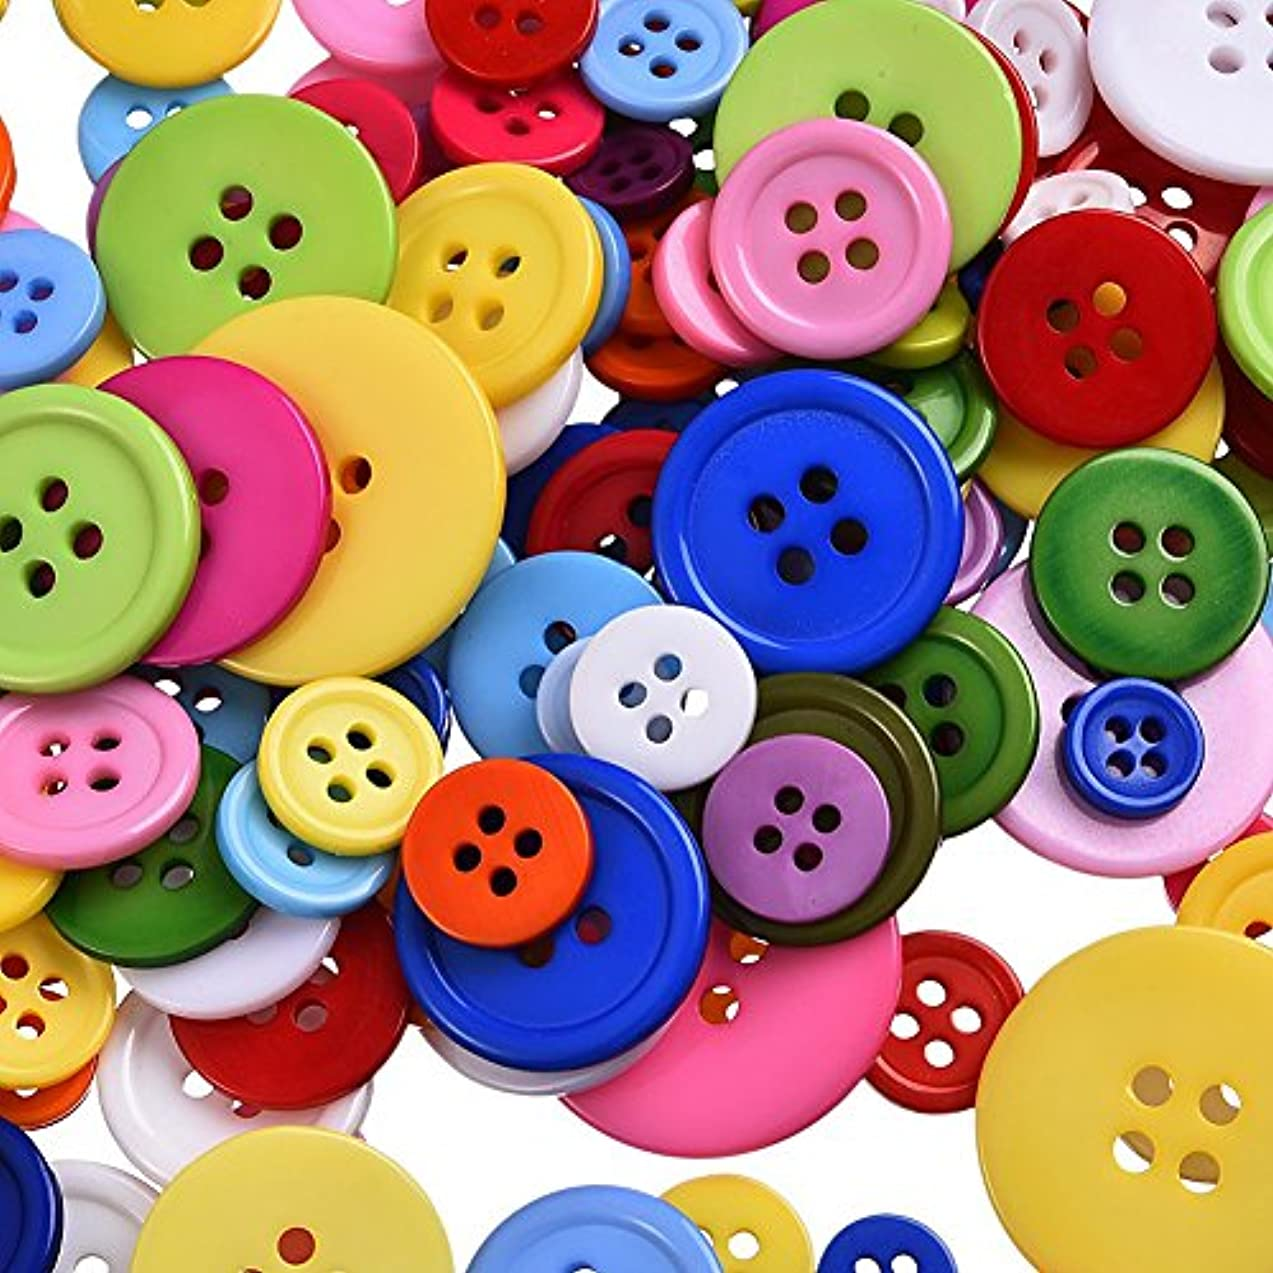 500 Pieces Assorted Buttons For Crafts Mixed Color Resin Round Buttons Craft Buttons Favorite Findings Basic Buttons, Assorted Colors and Sizes